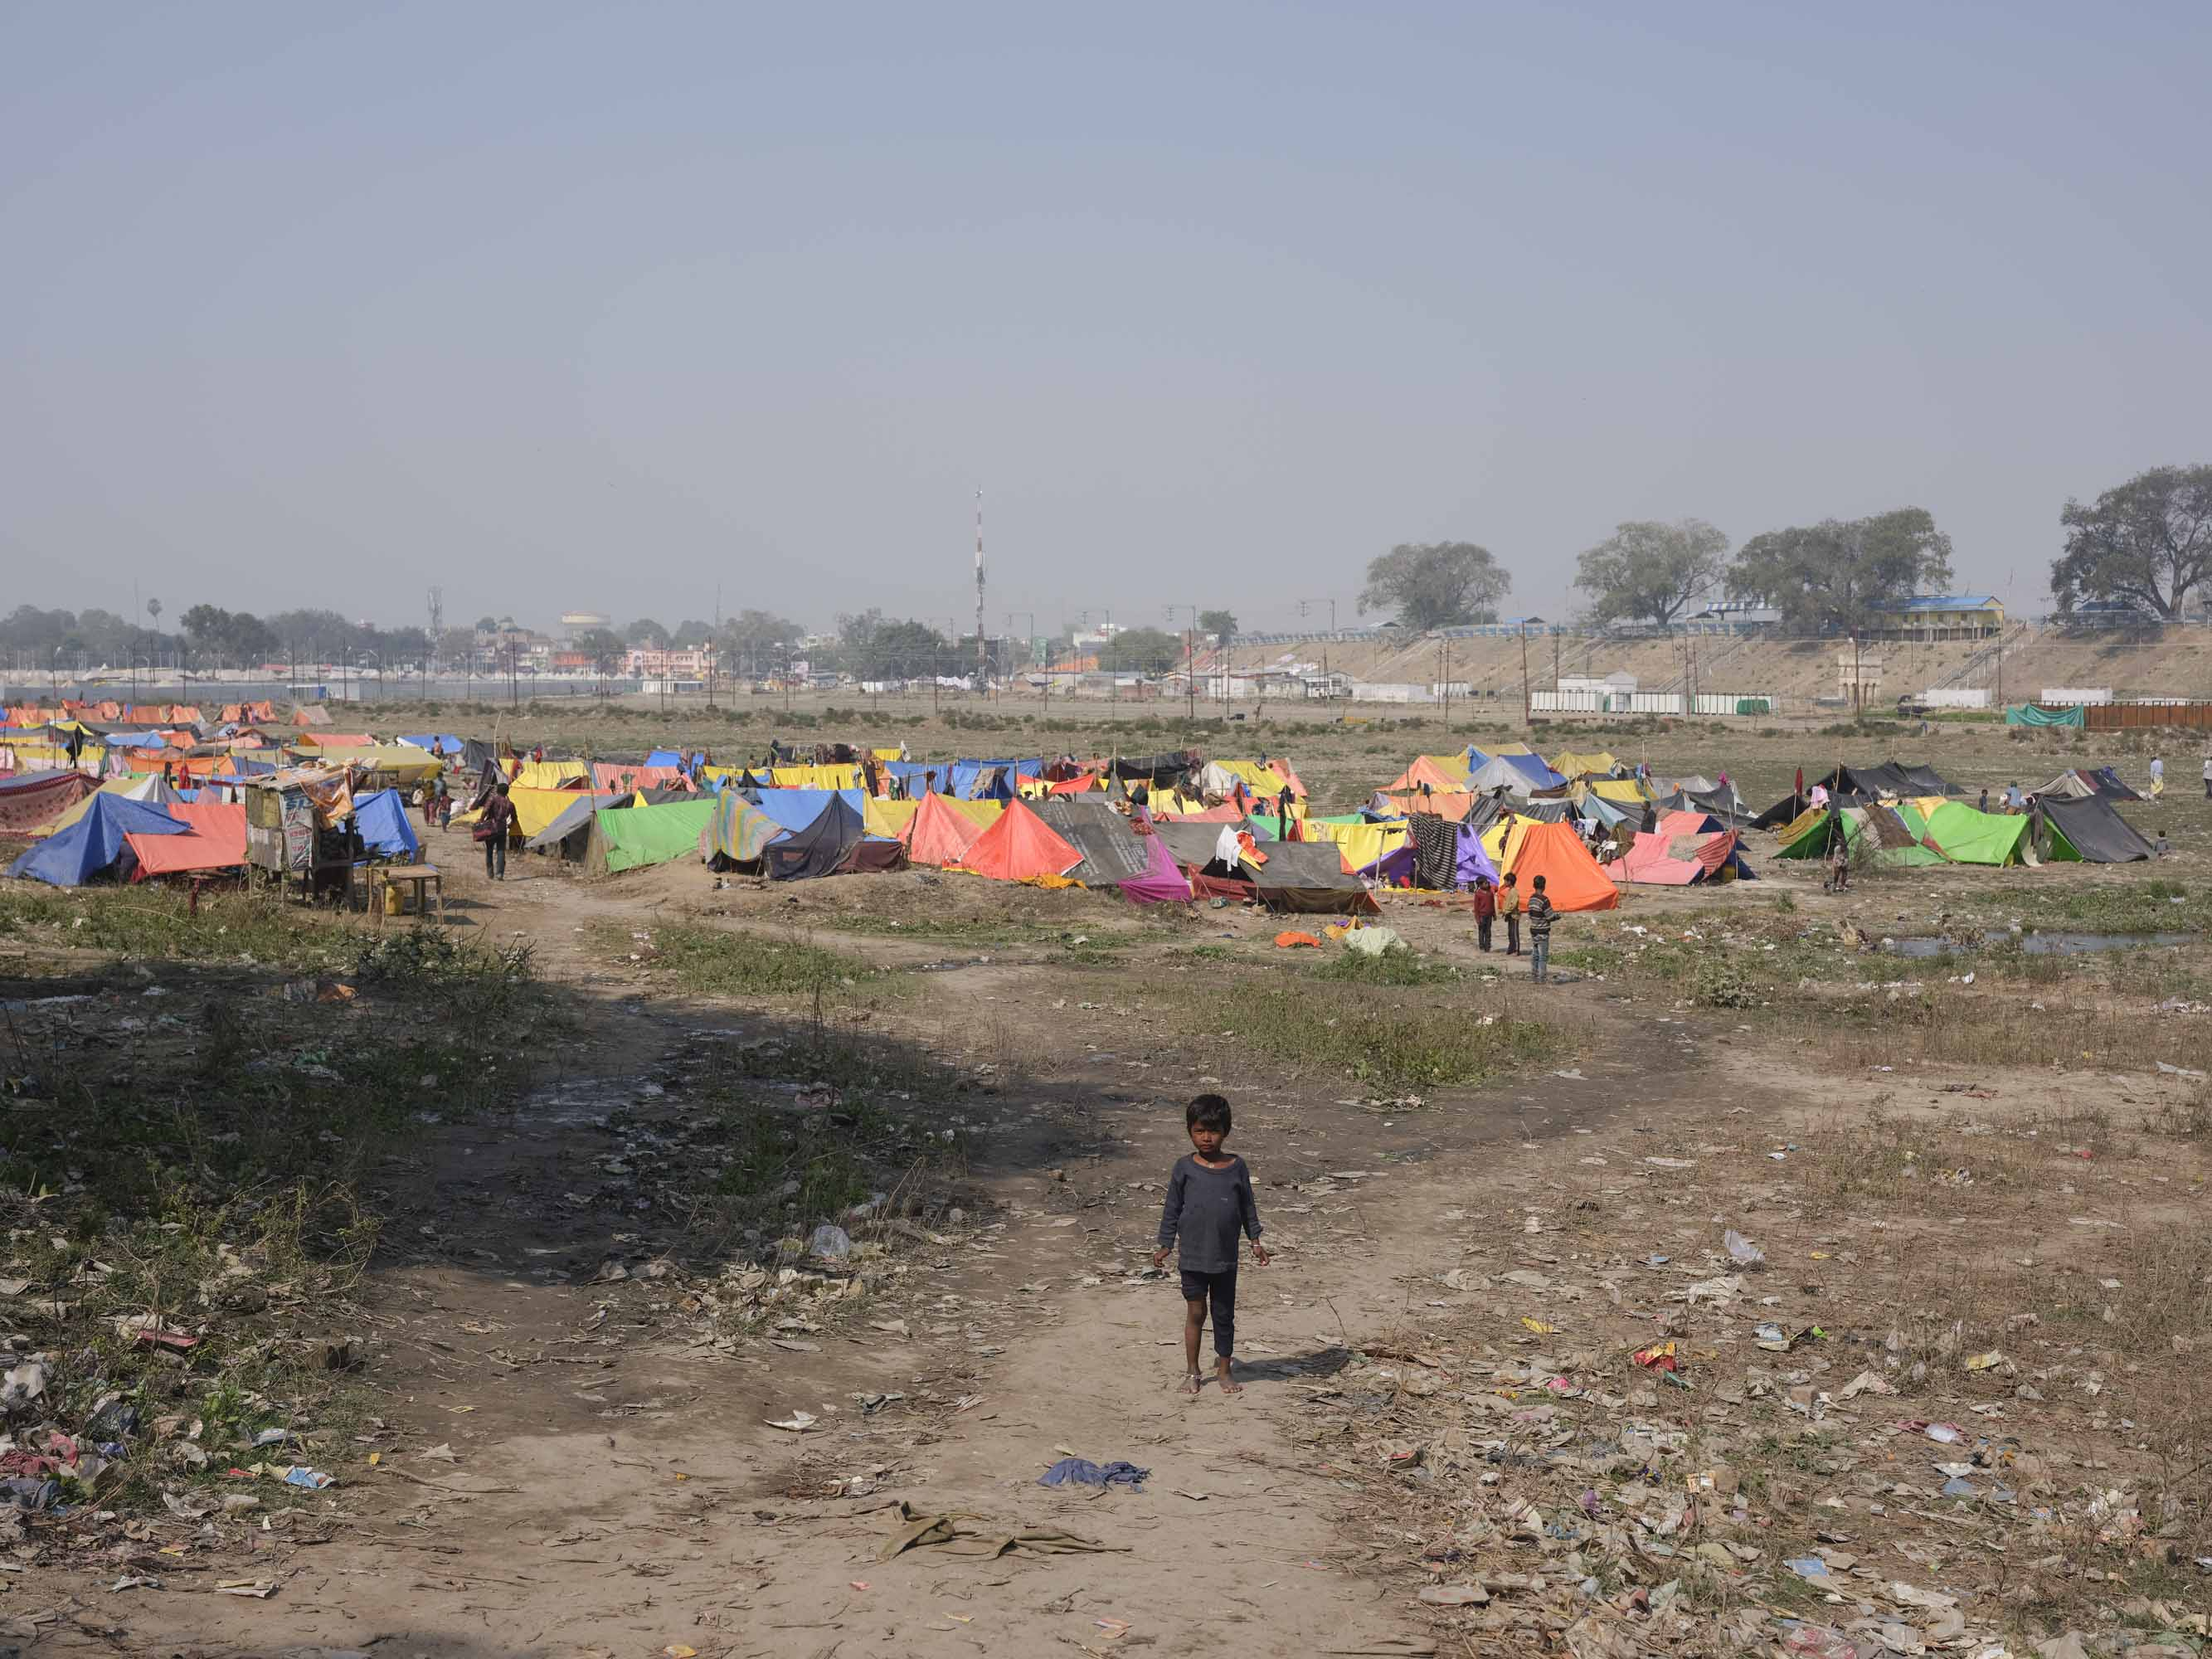 kid camp tent pilgrims Kumbh mela 2019 India Allahabad Prayagraj Ardh hindu religious Festival event rivers photographer jose jeuland photography